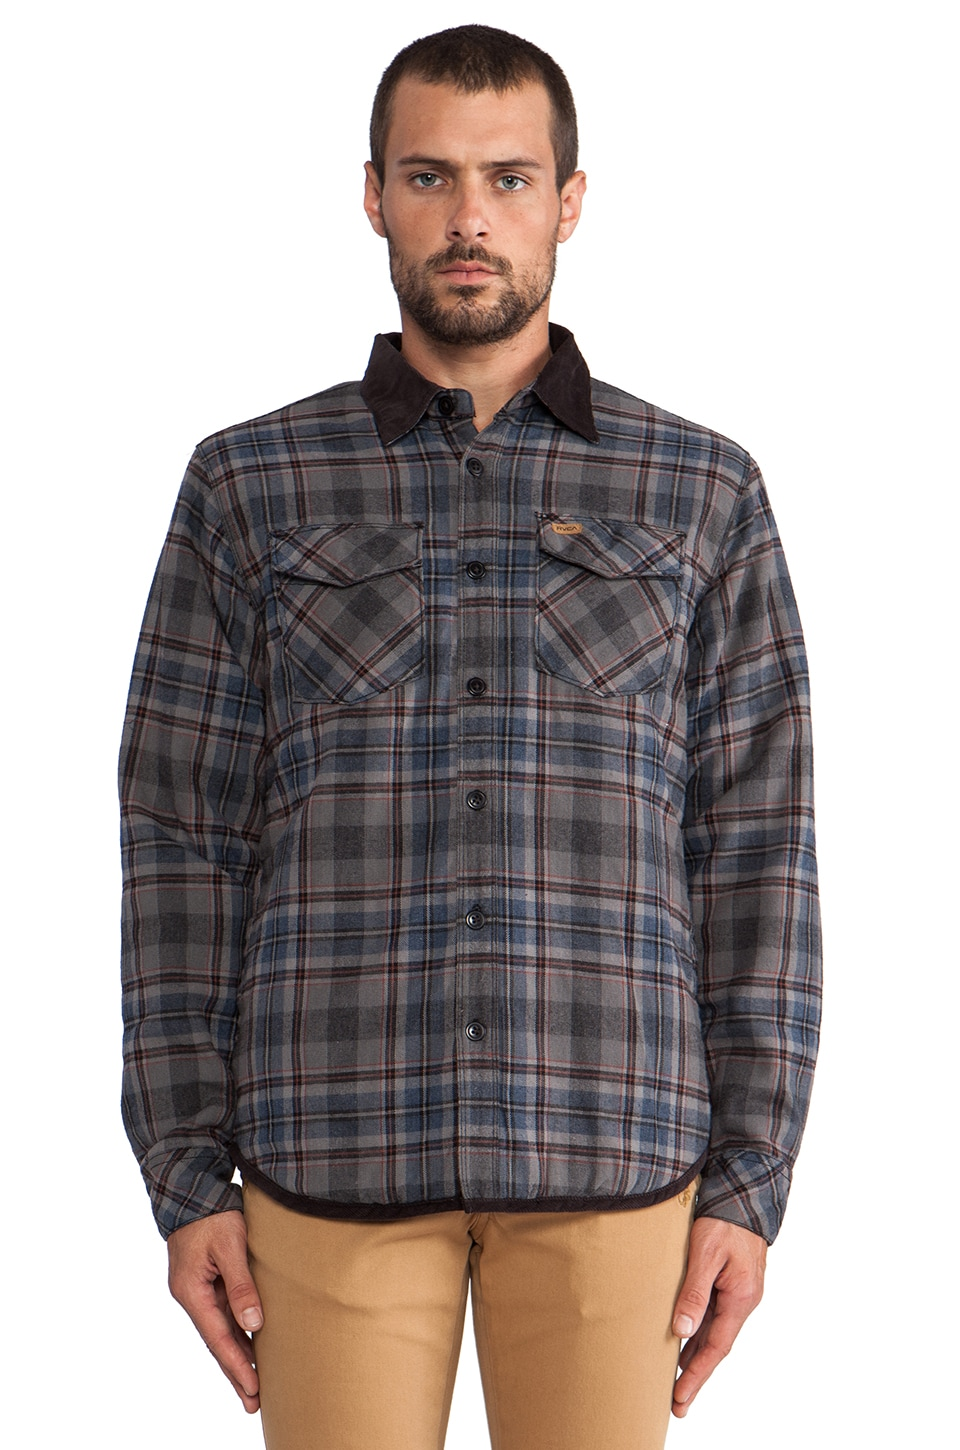 RVCA Frostline Shirt Jacket in Black